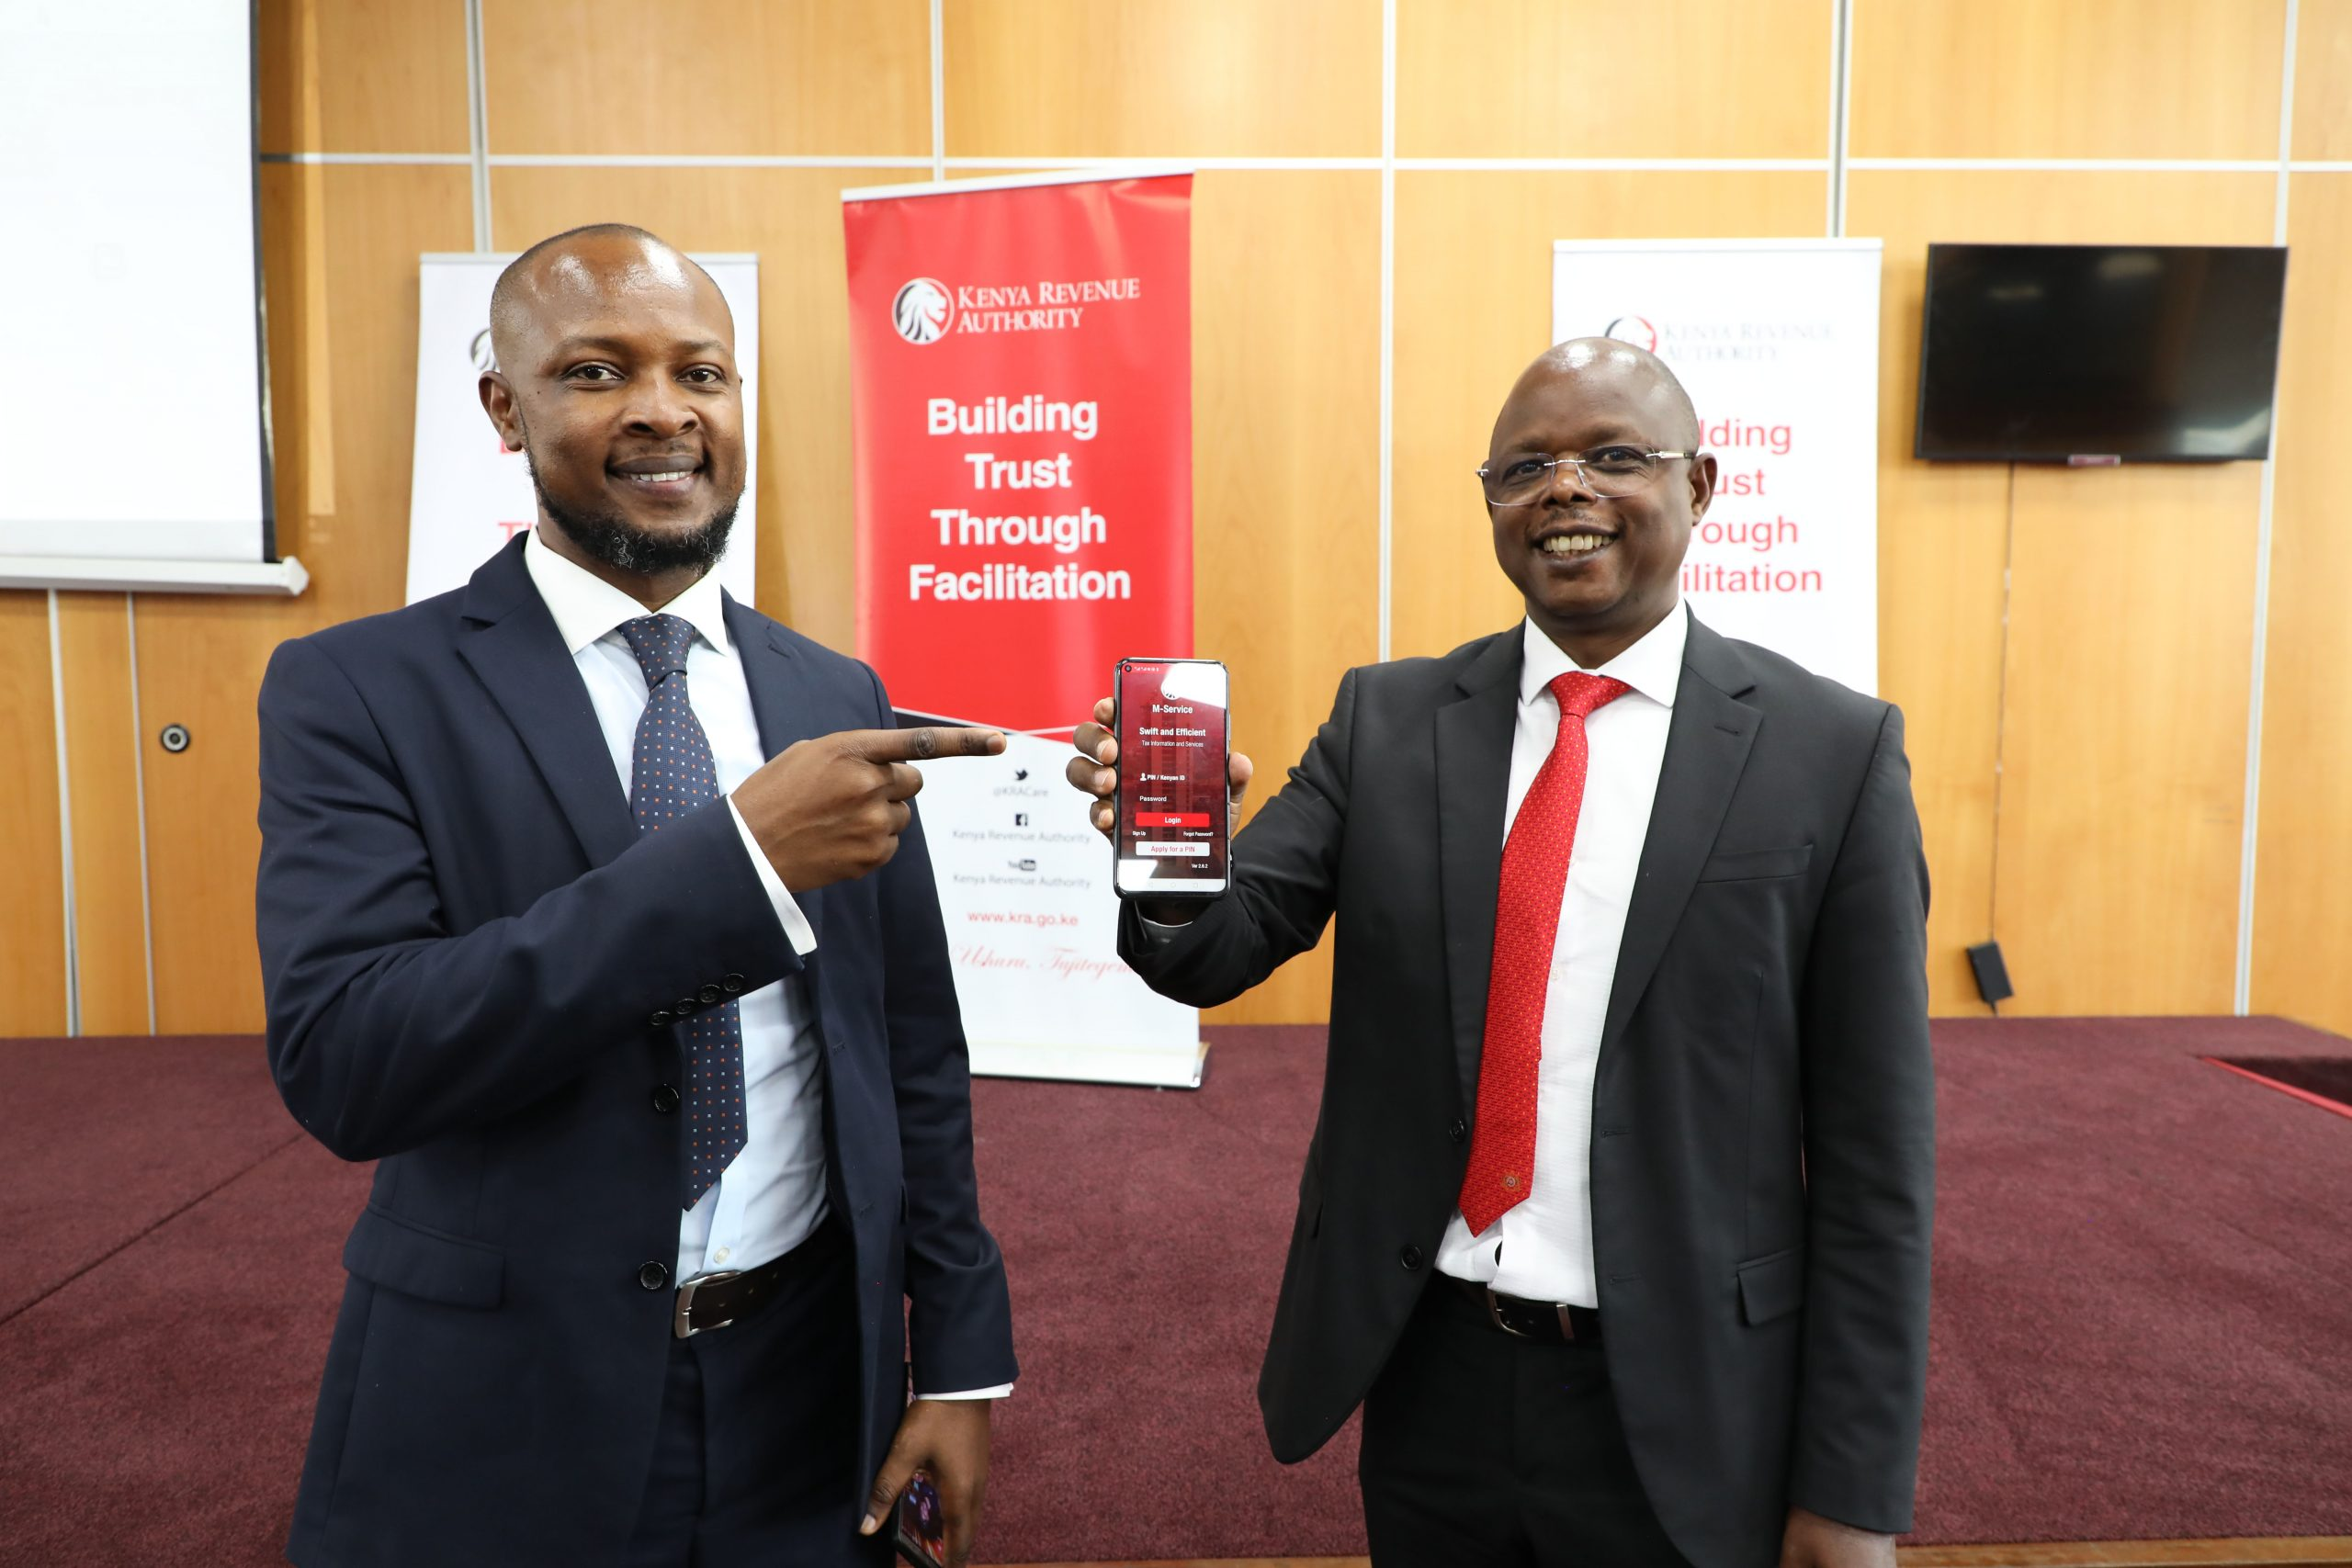 KRA unveils a mobile application as part of its efforts to simplify and enable taxpayers to conveniently access tax services.